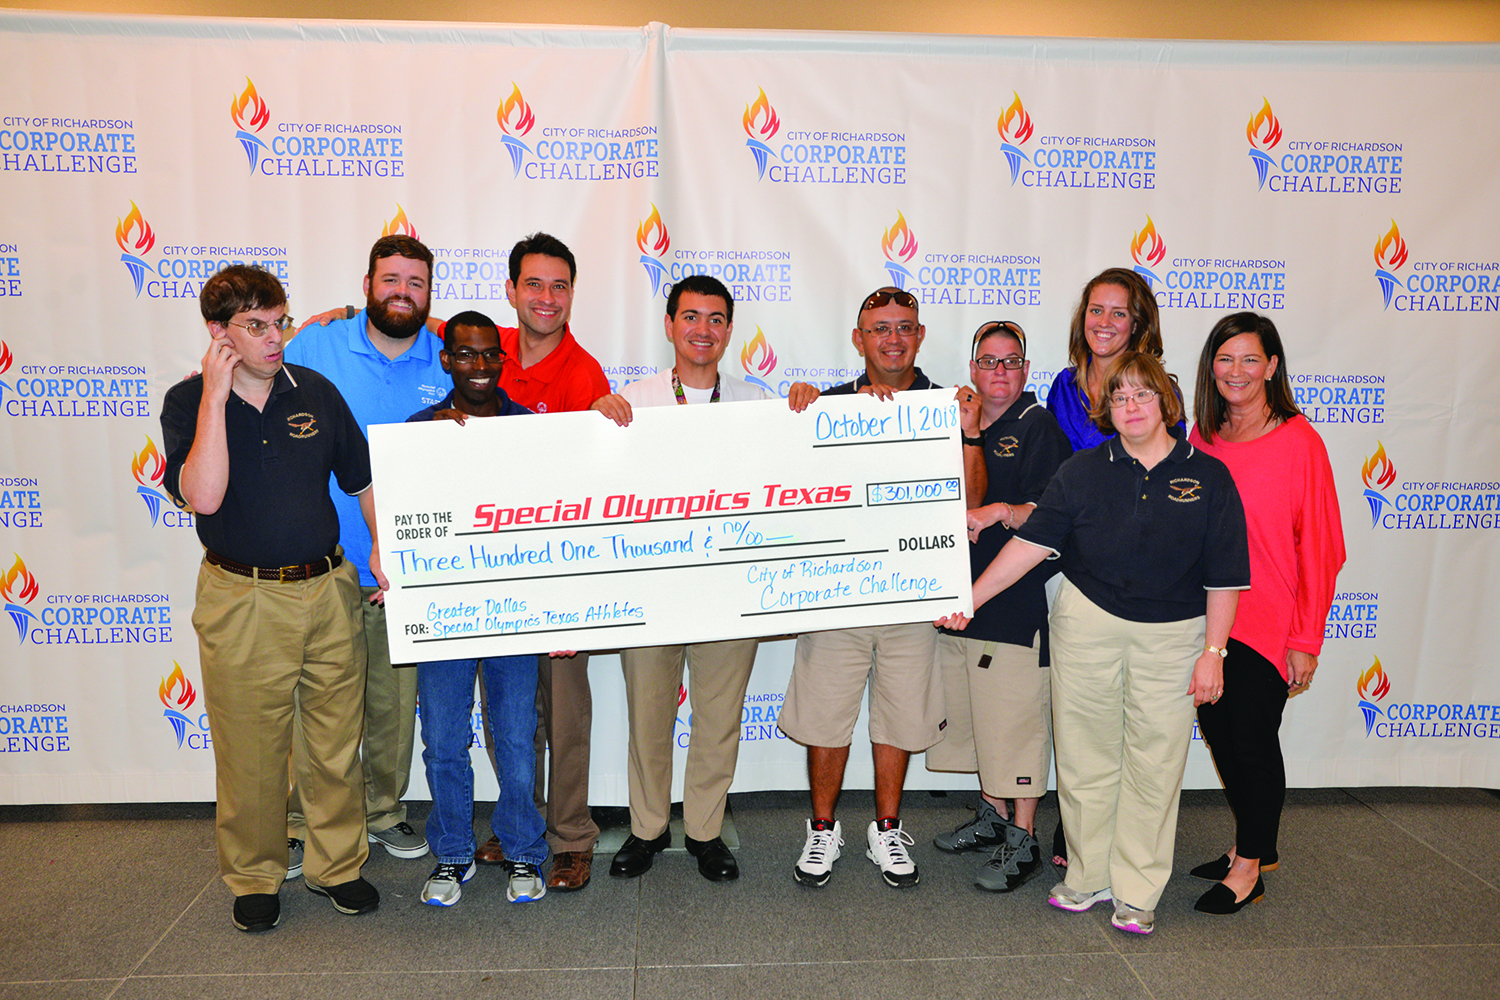 $301,000 raised for Special Olympics Texas